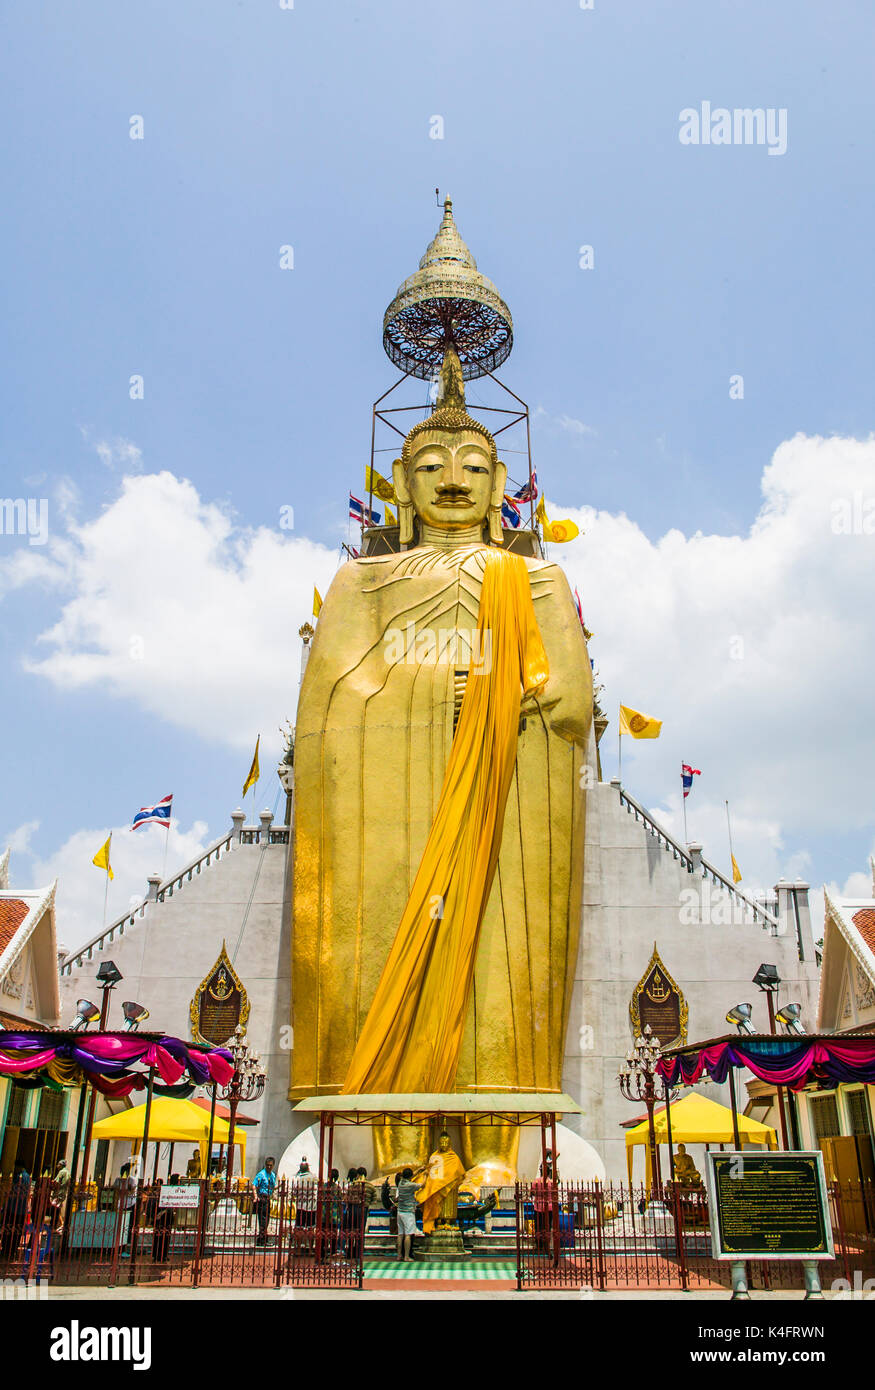 The temple of the Standing Buddha, Bangkok, Thailand. - Stock Image